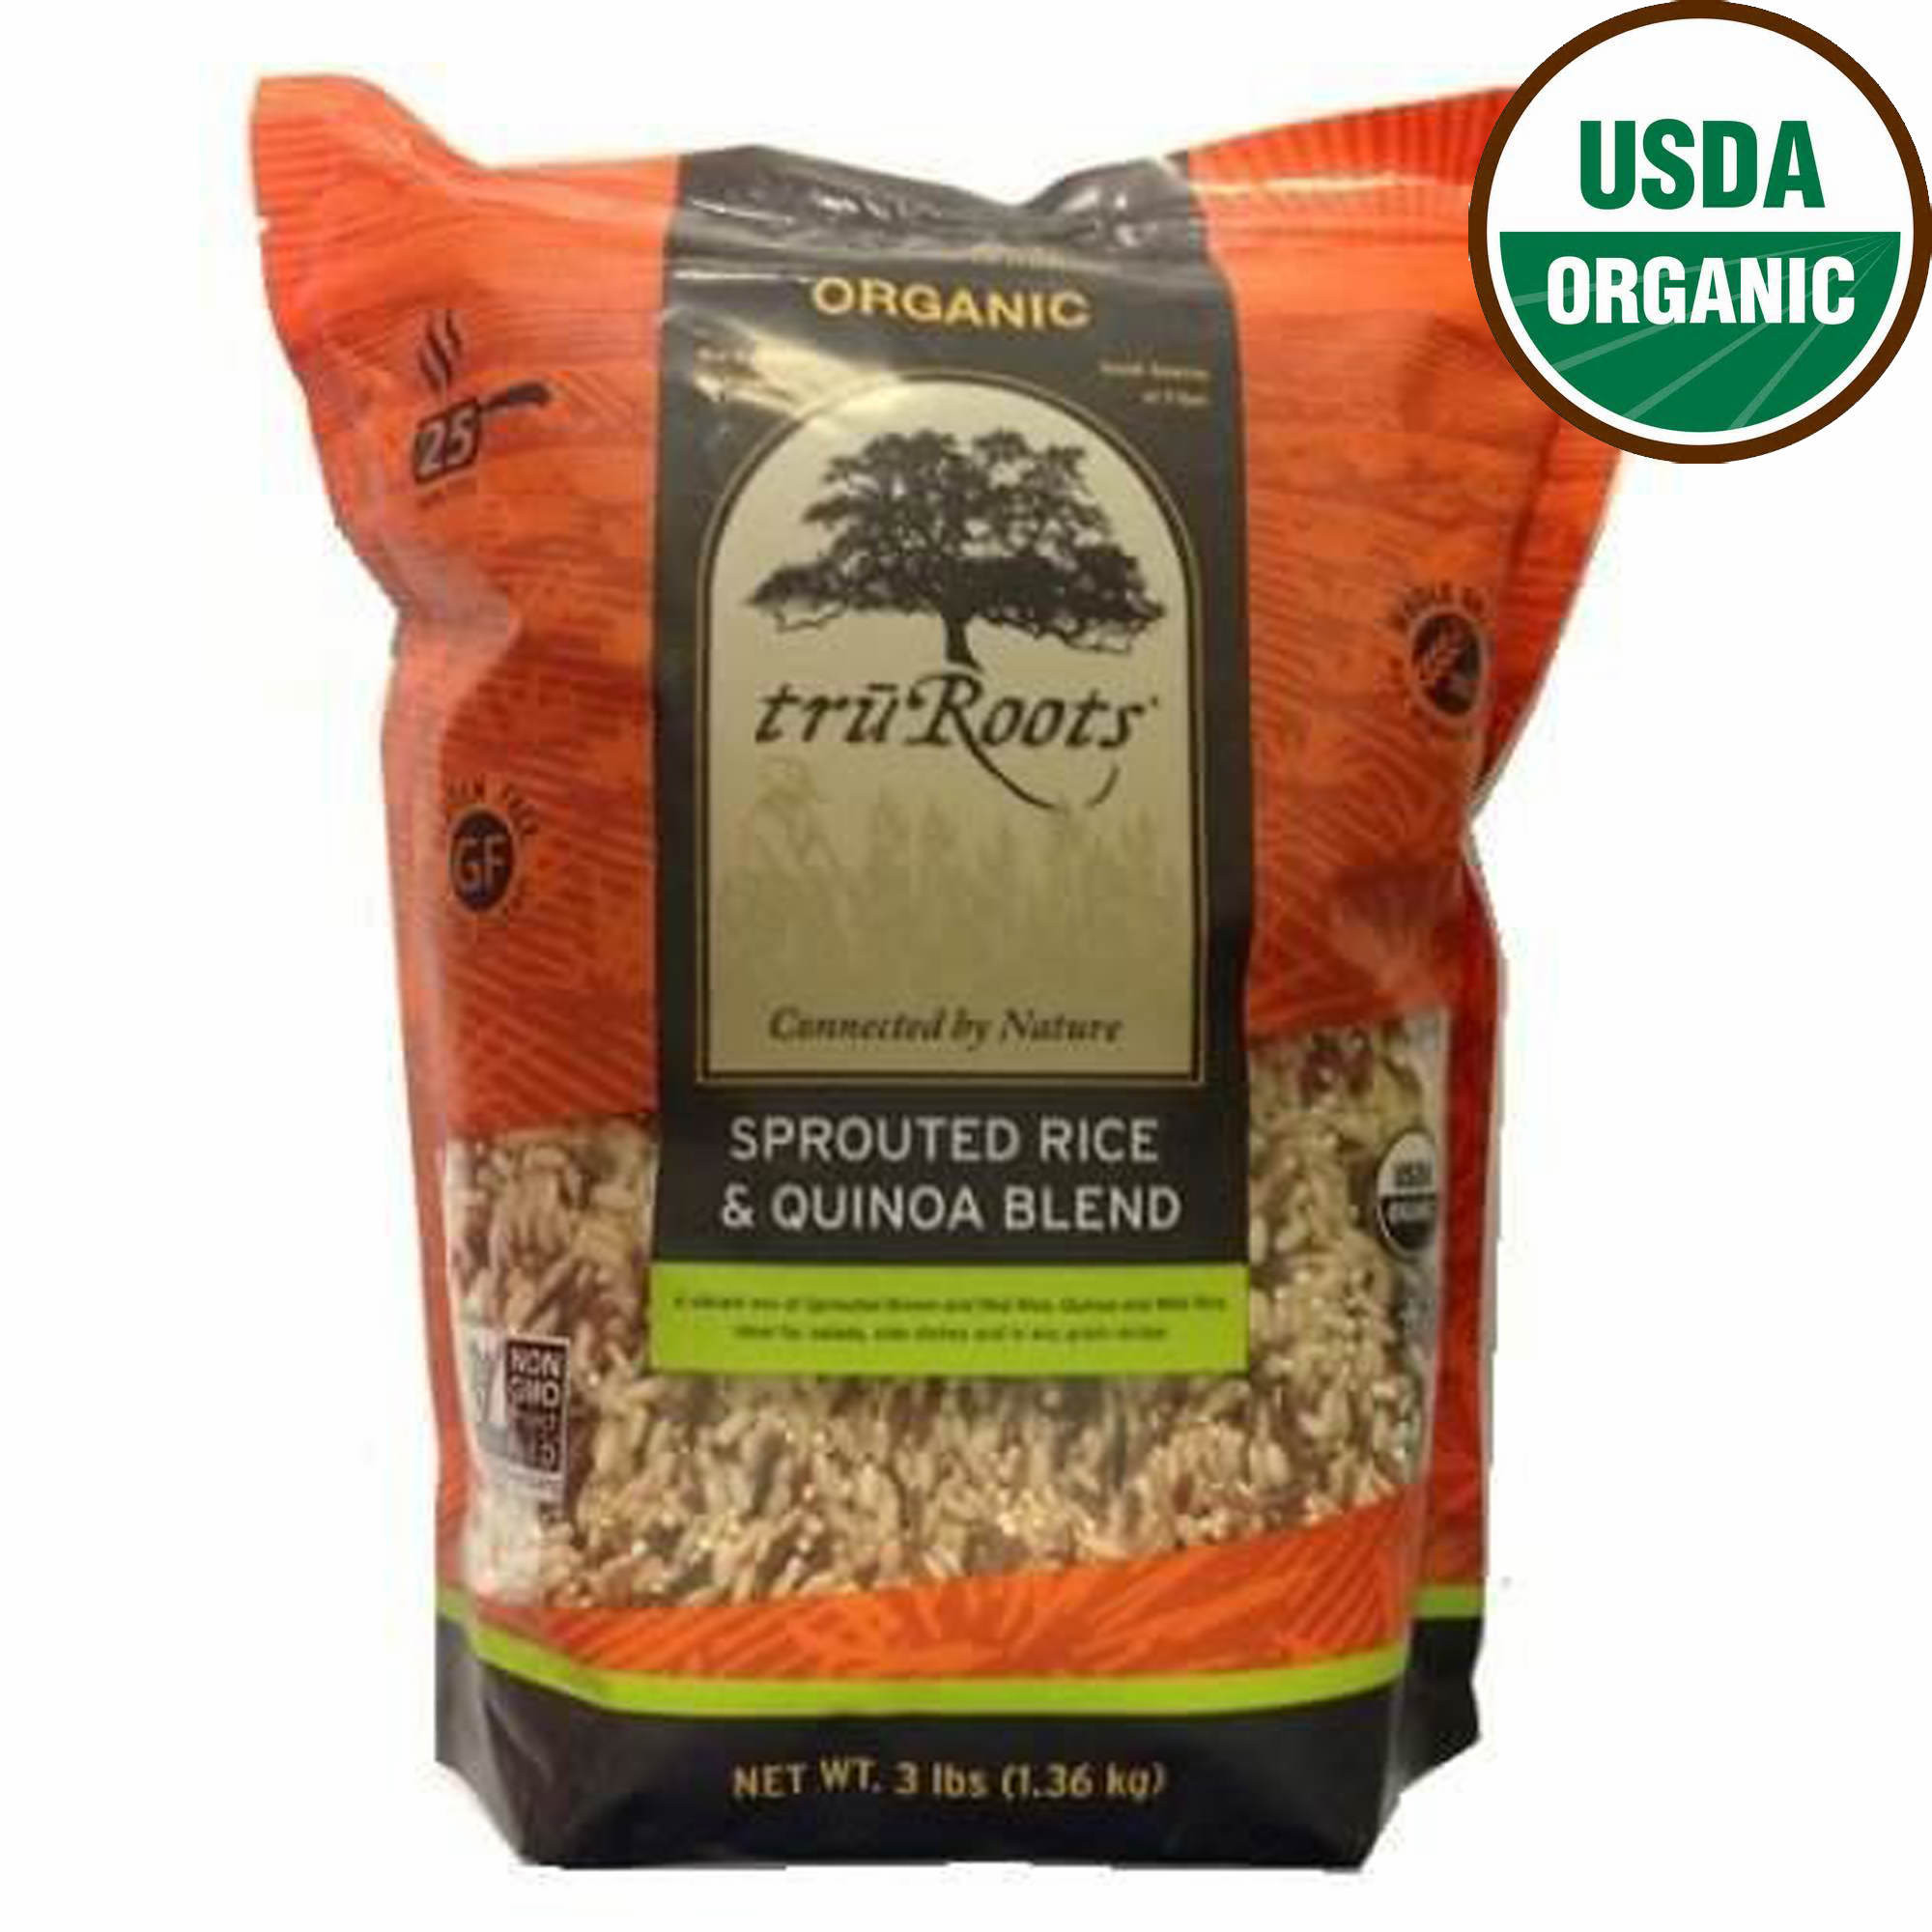 Truroots Organic Sprouted Rice And Quinoa Blend Bag 3 Lbs  truRoots Organic Sprouted Rice and Quinoa Blend 3 lb Bag